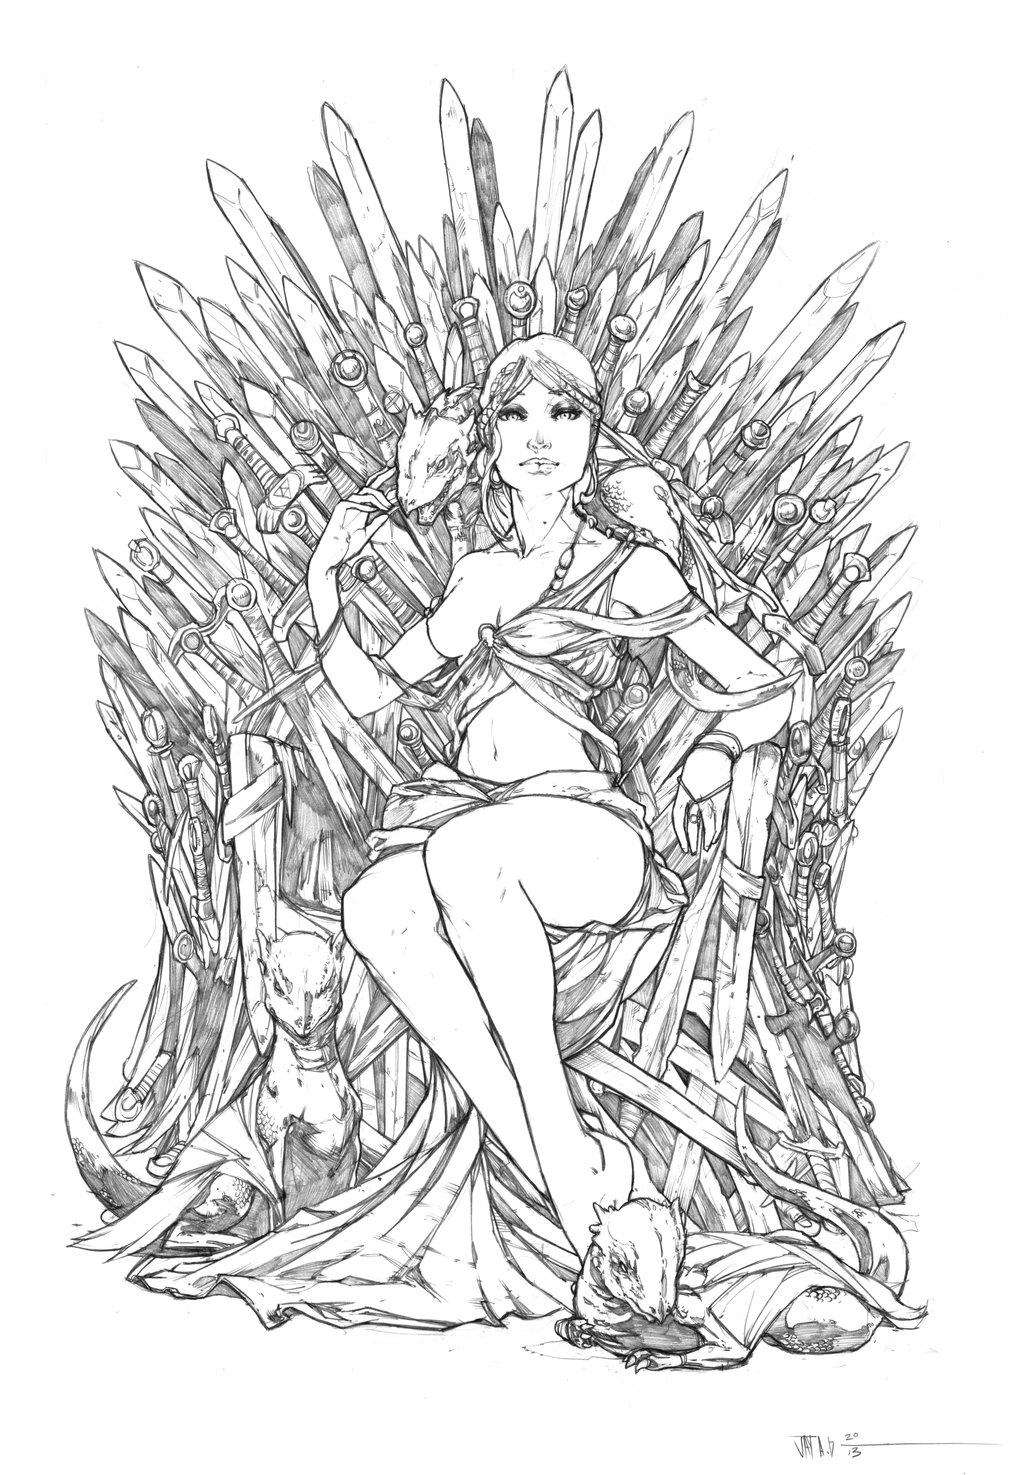 easy mandala coloring pages - Princess Daenerys on the Iron Throne